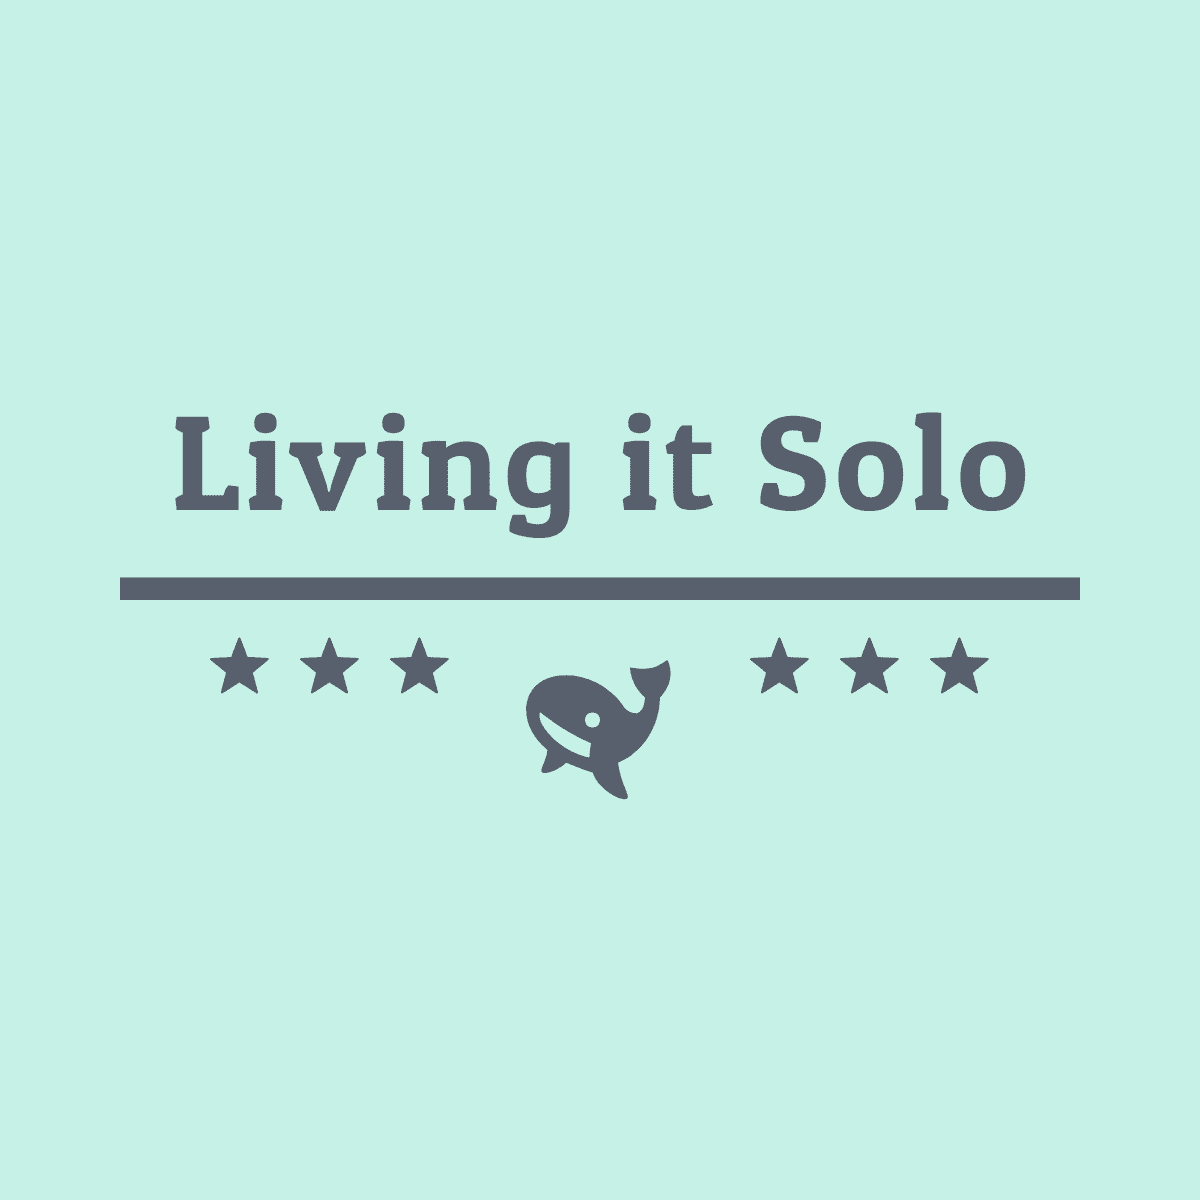 Living it Solo's logo